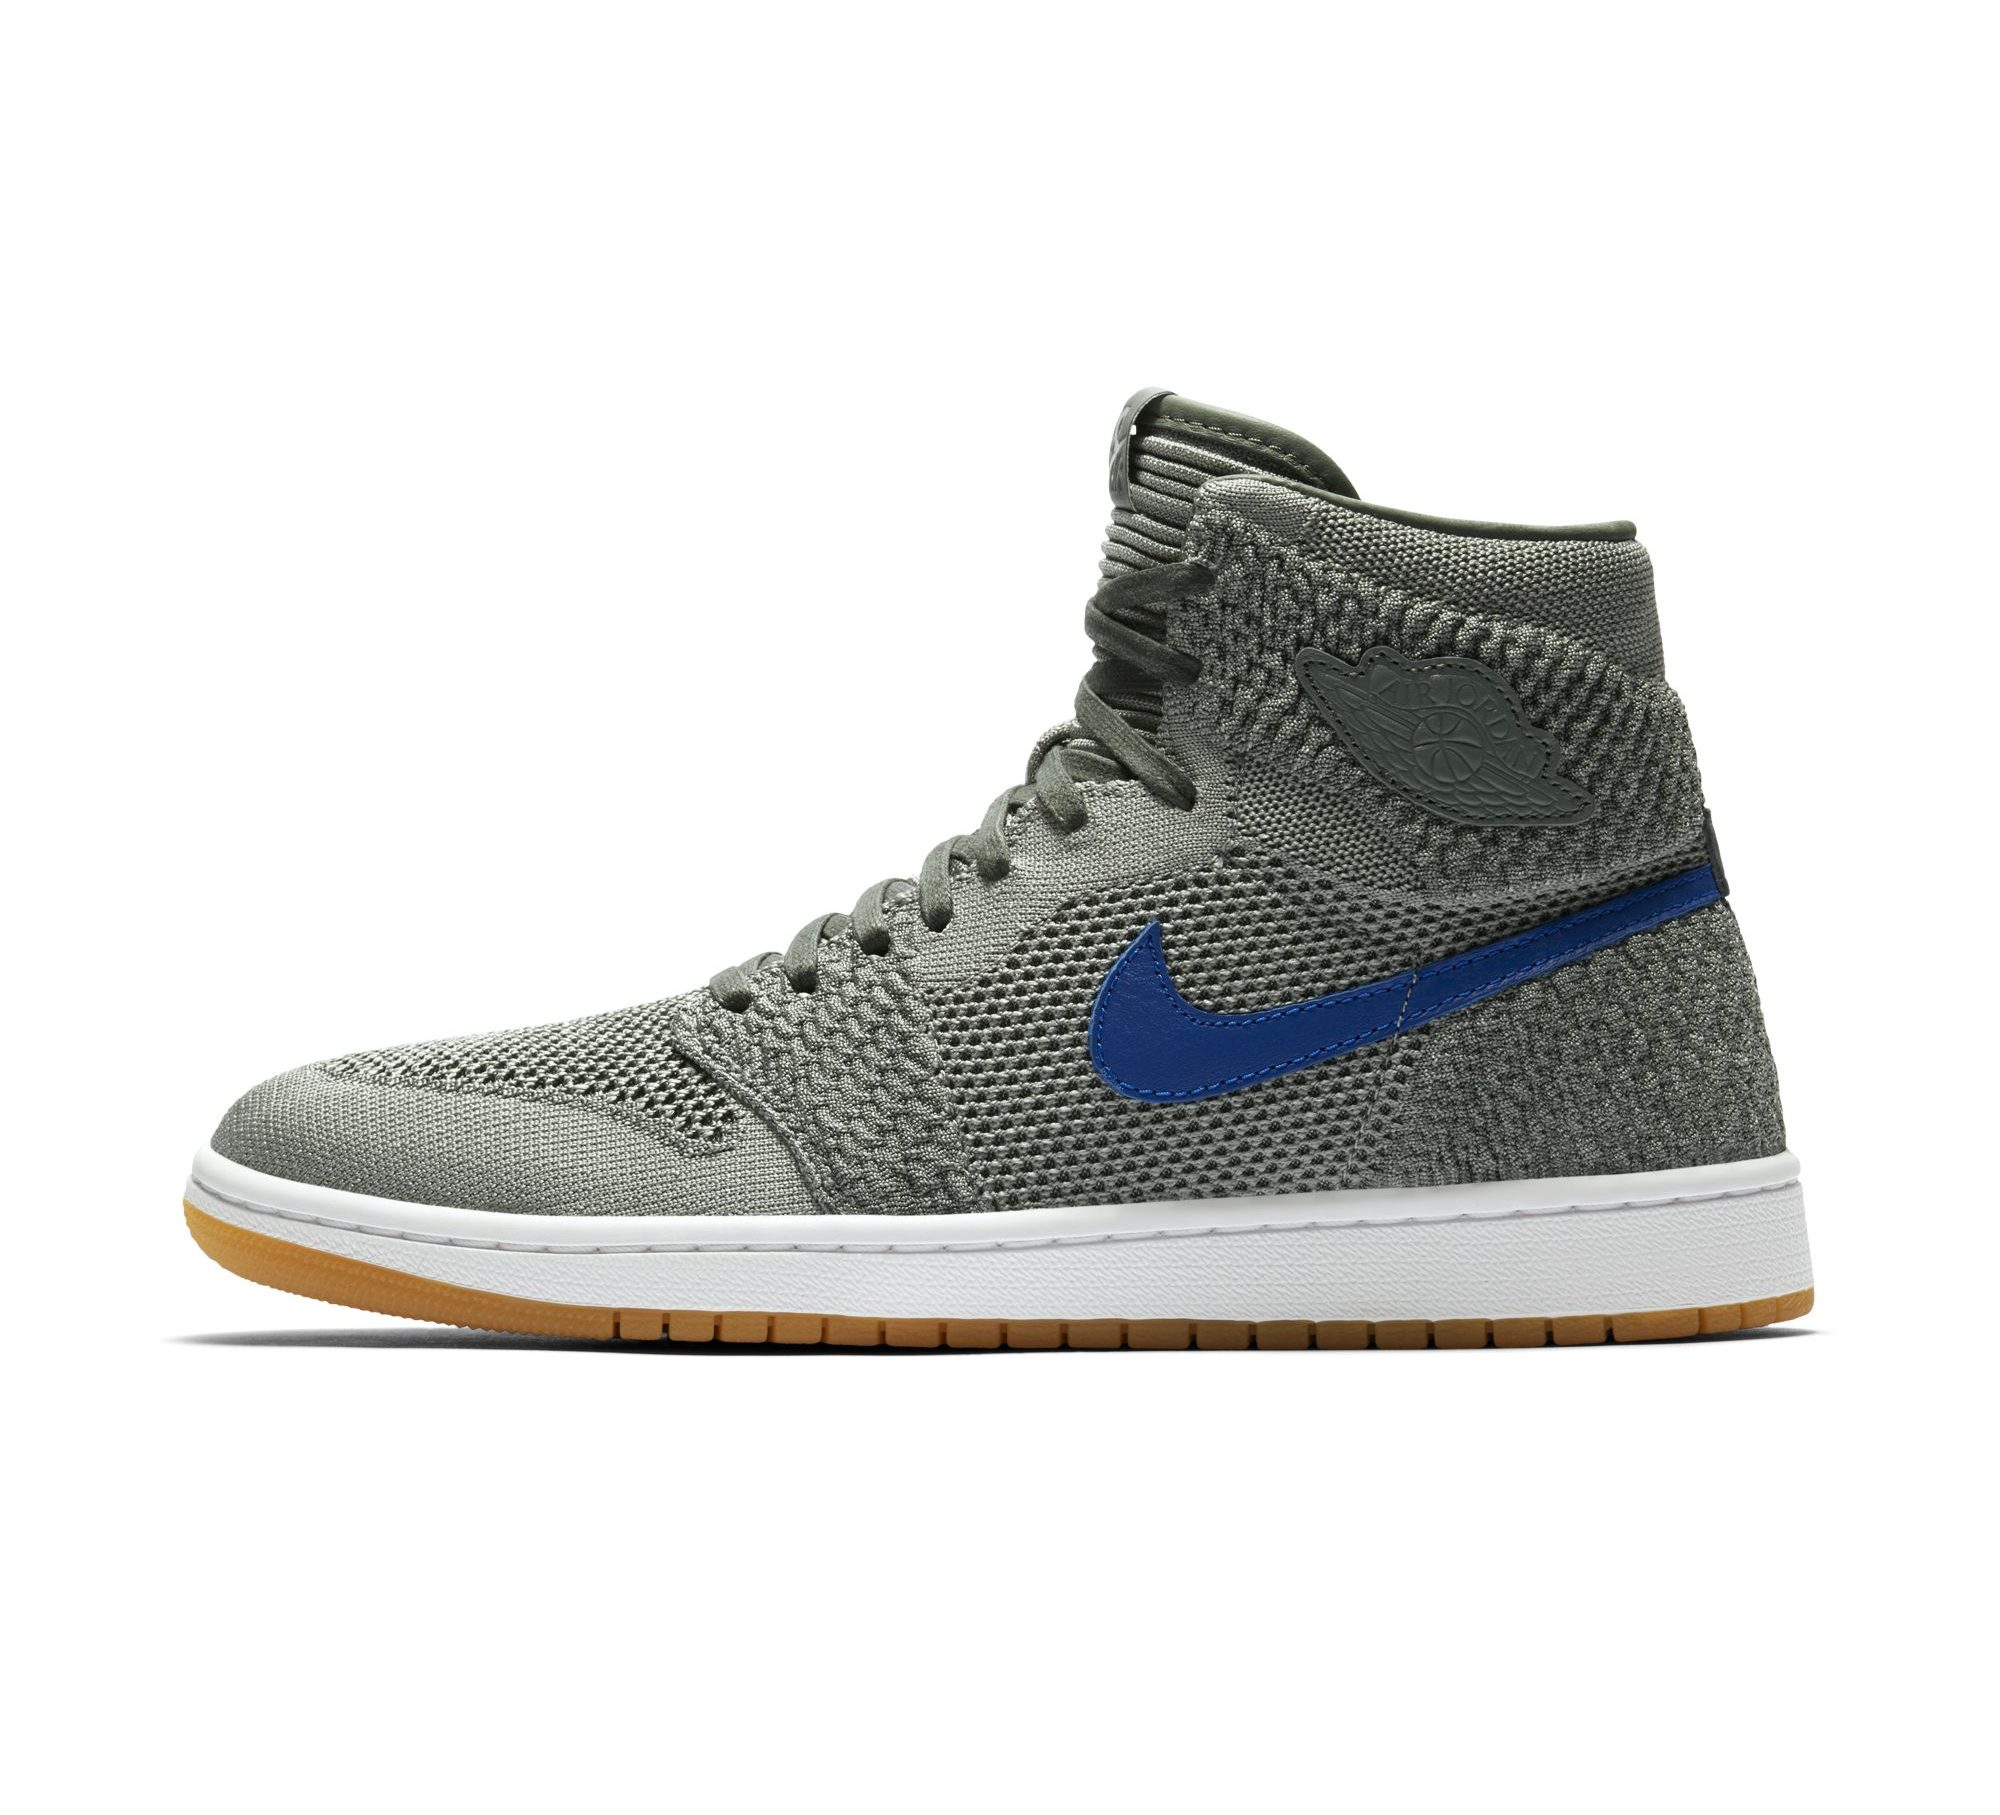 d1e347f6e2e2 air jordan 1 flyknit Archives - WearTesters